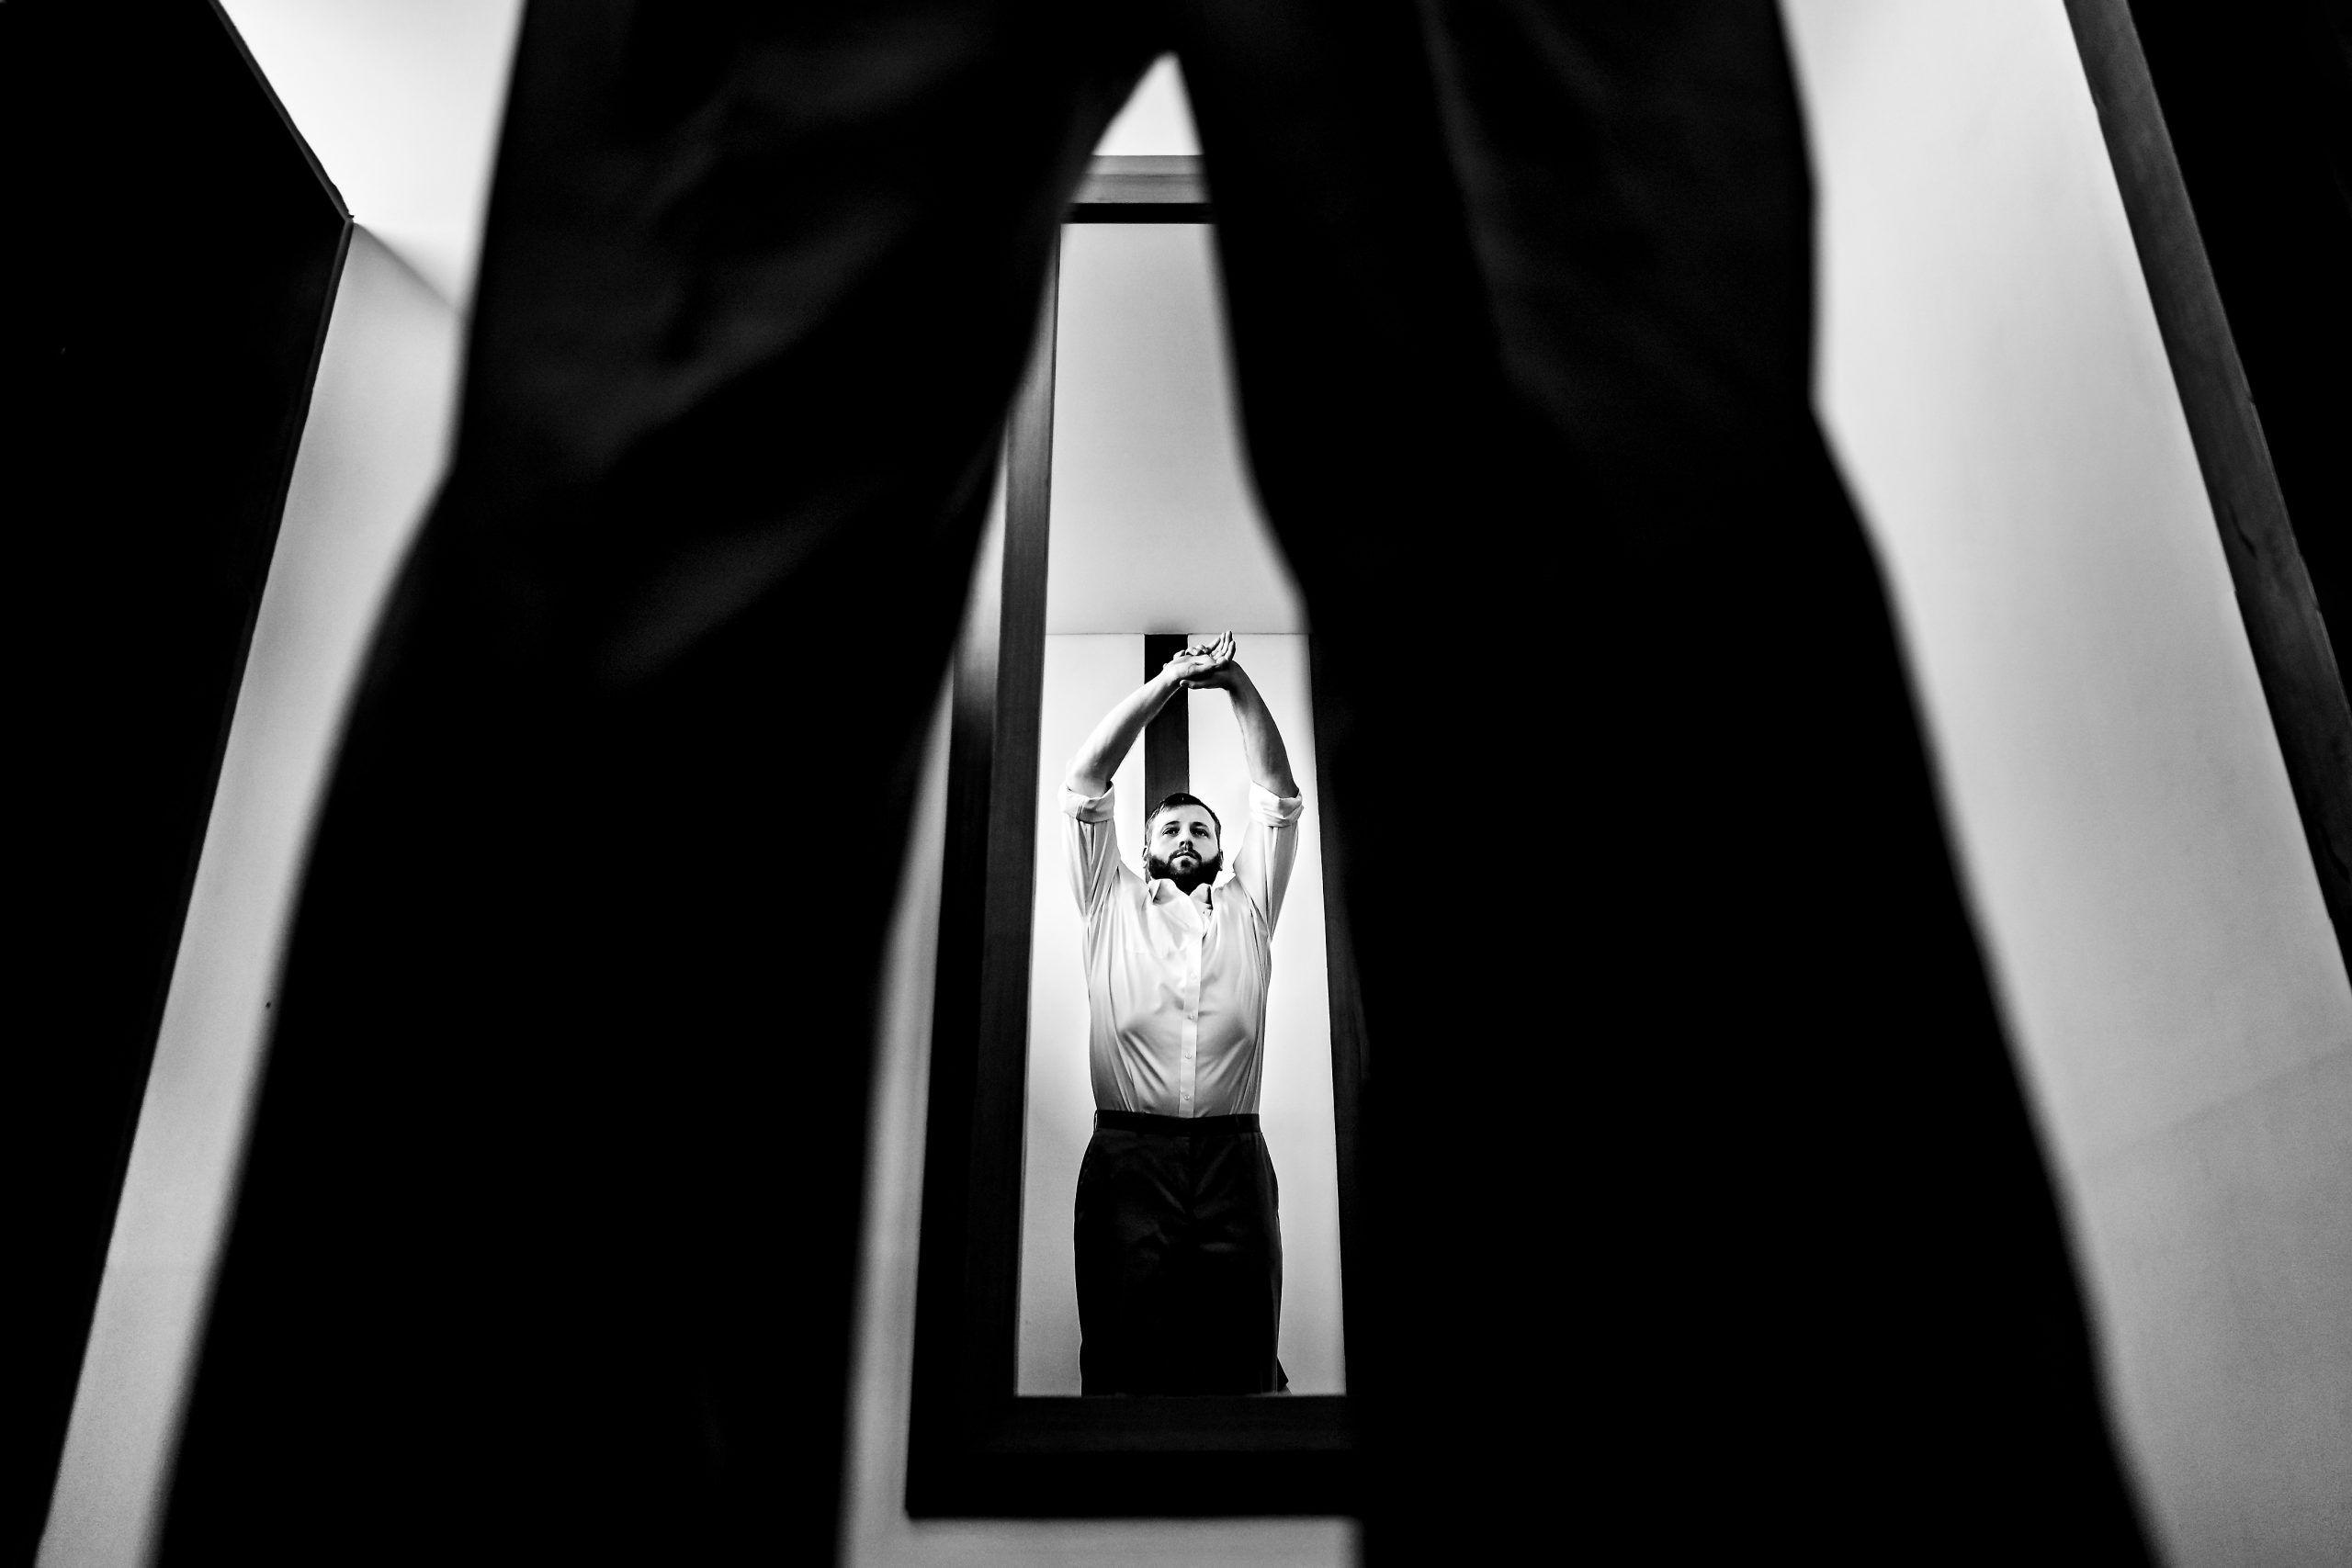 Man stretches in front of a mirror